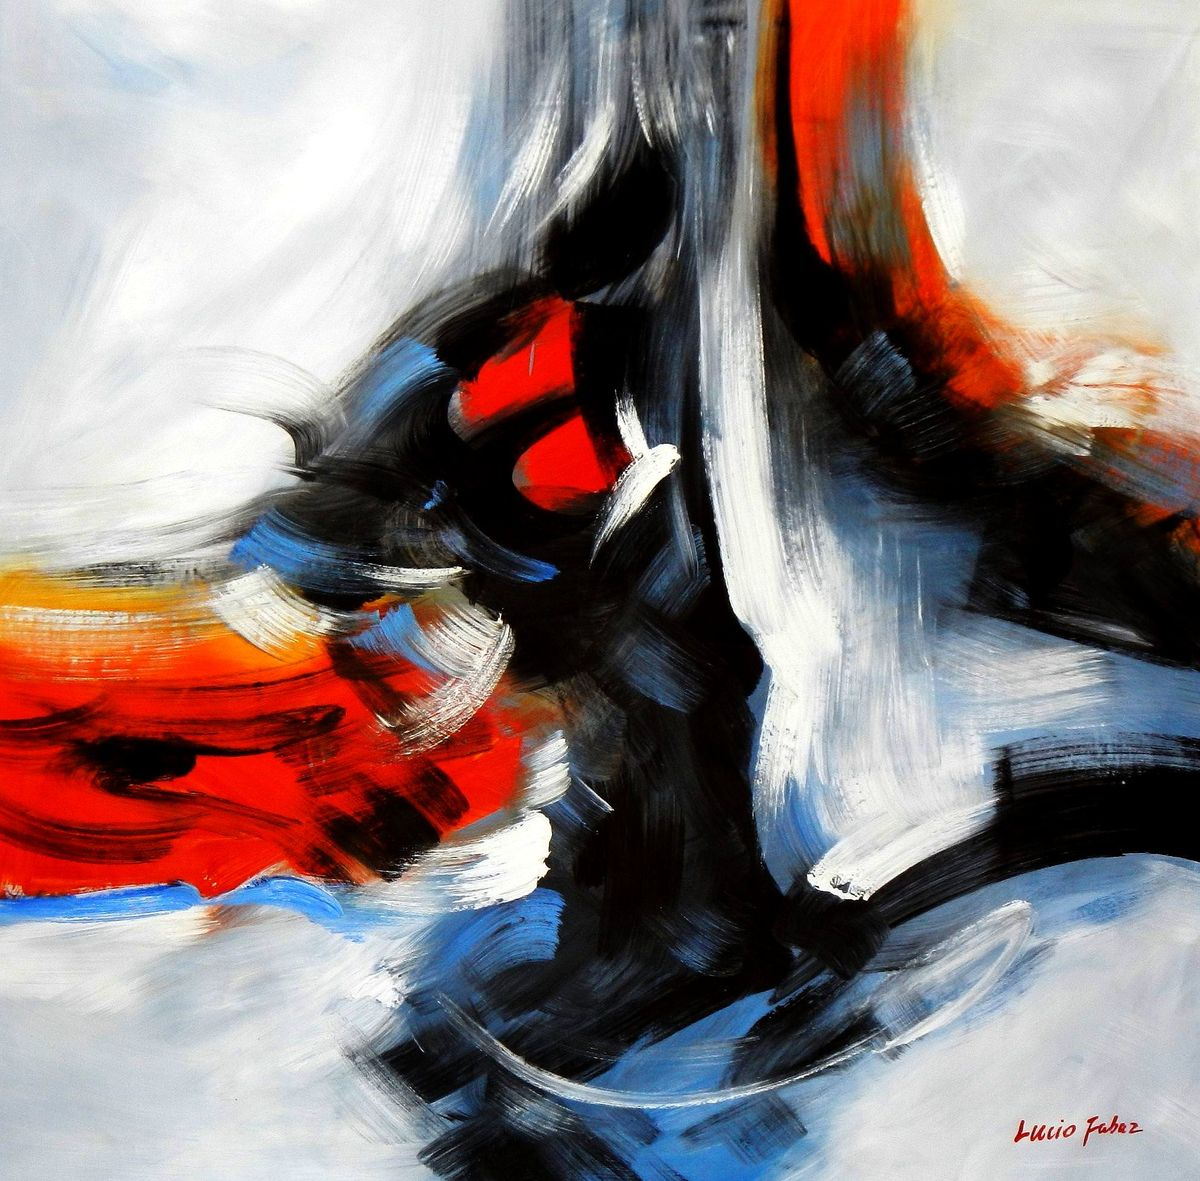 Abstract - New York sailing journey m94073 120x120cm abstraktes Ölgemälde handgemalt